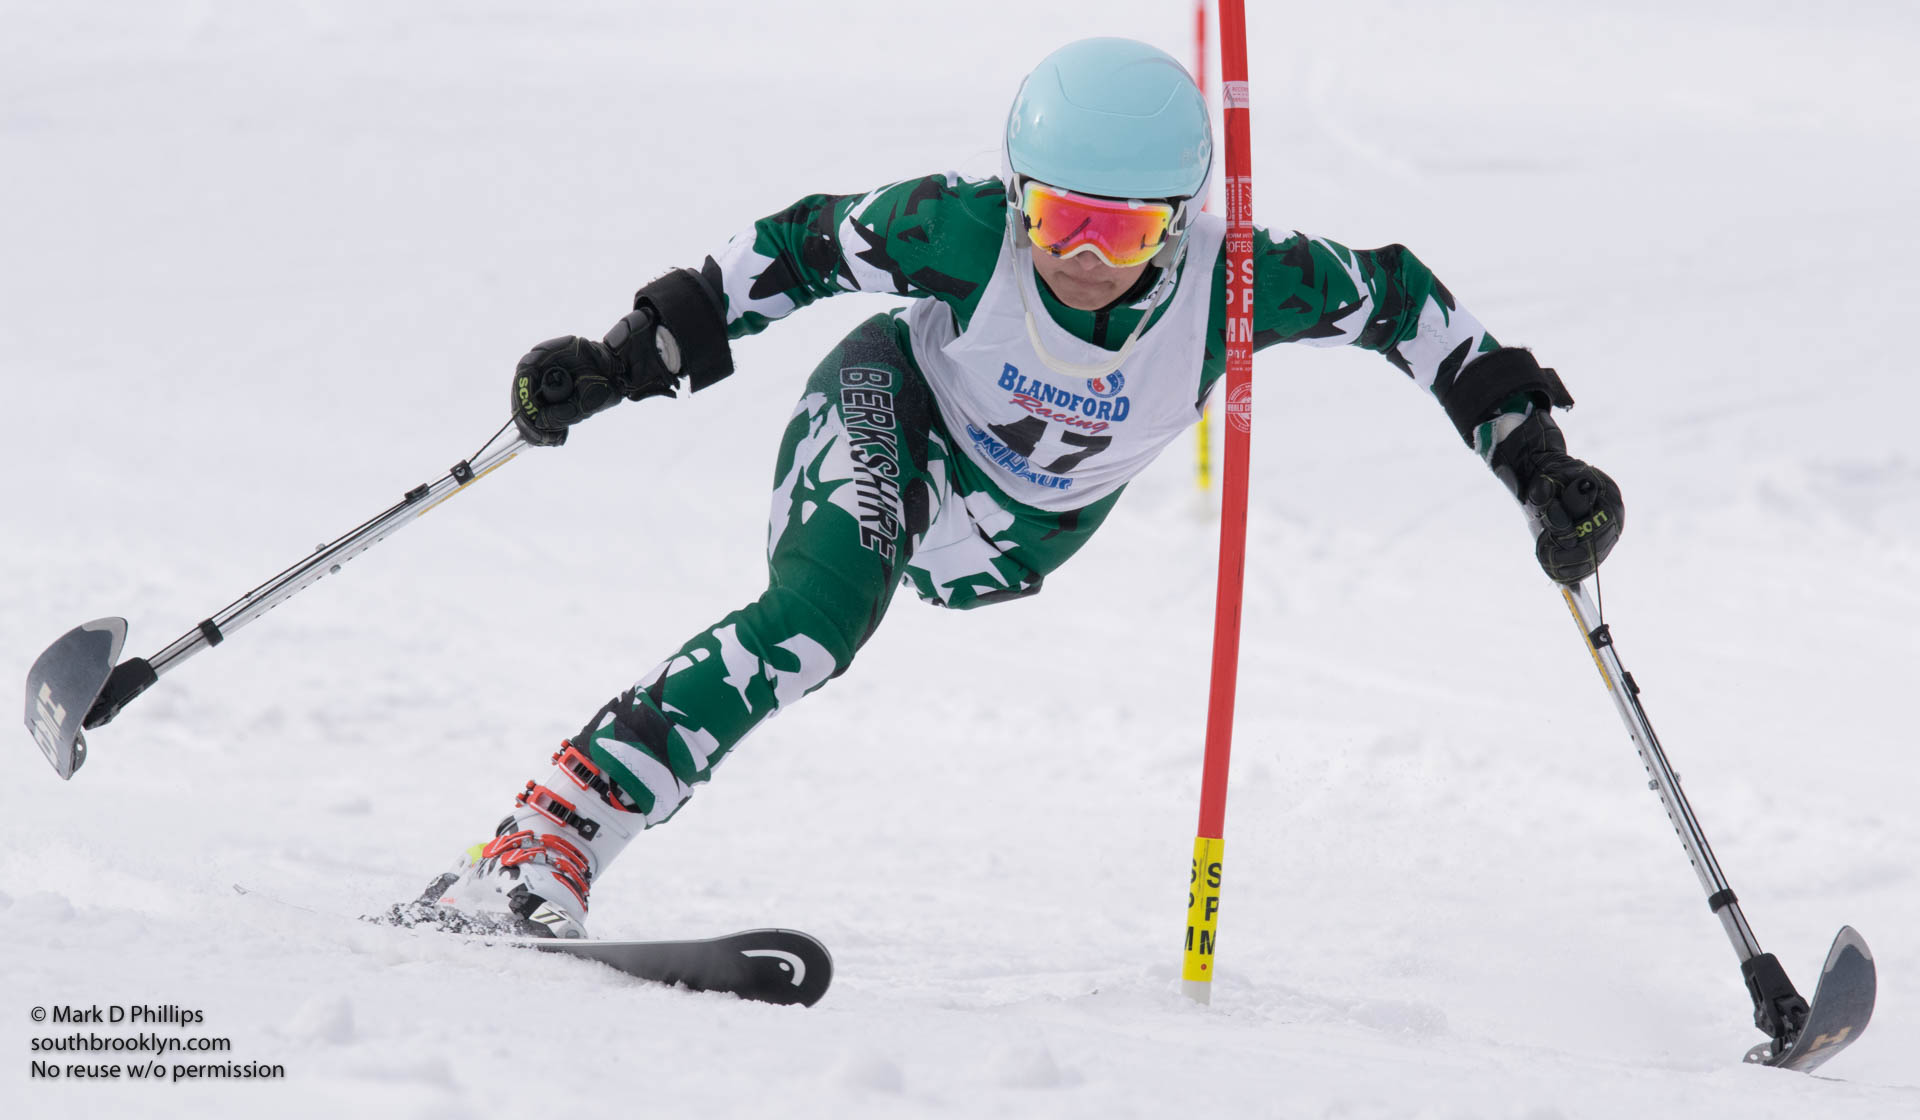 Insha Afsar of BSST at U19 Race at Blandford Ski Area on January 30, 2016